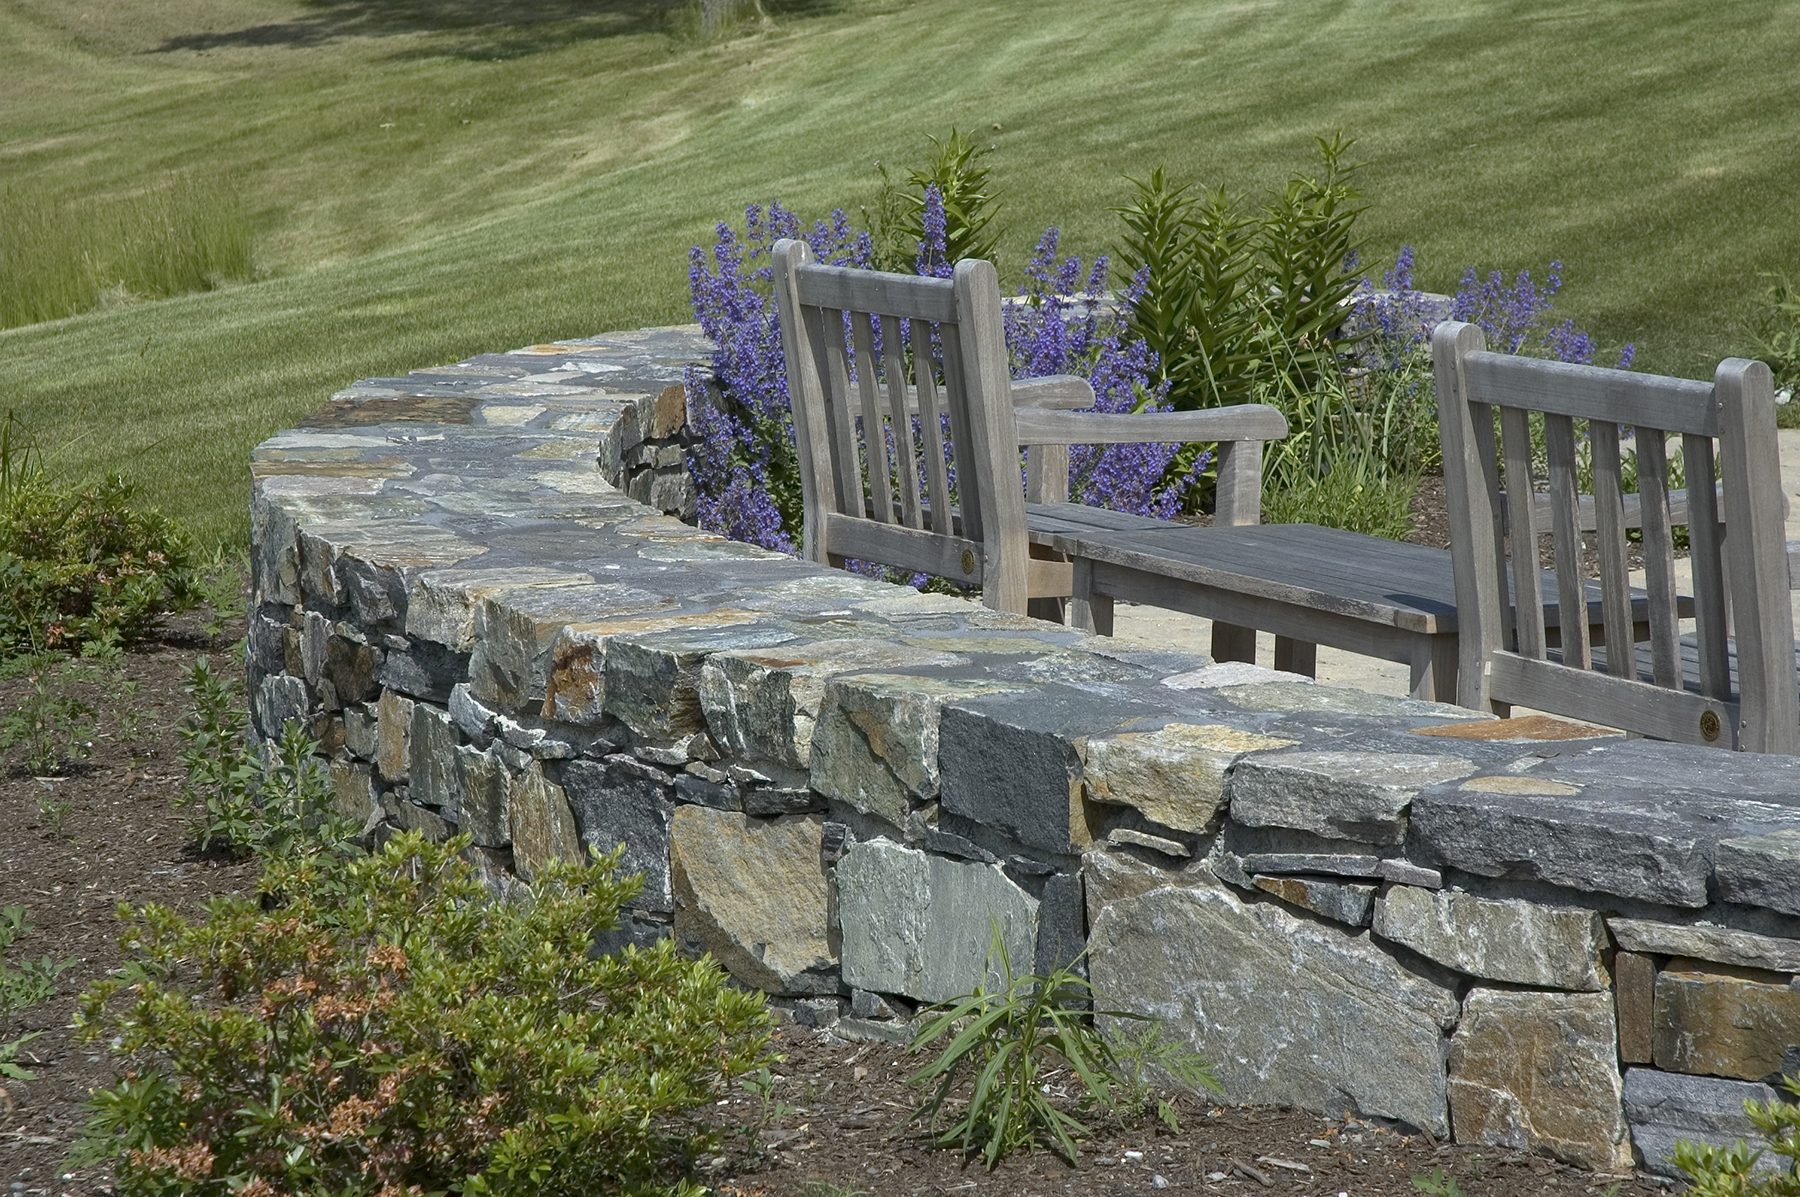 Wall stone with benches